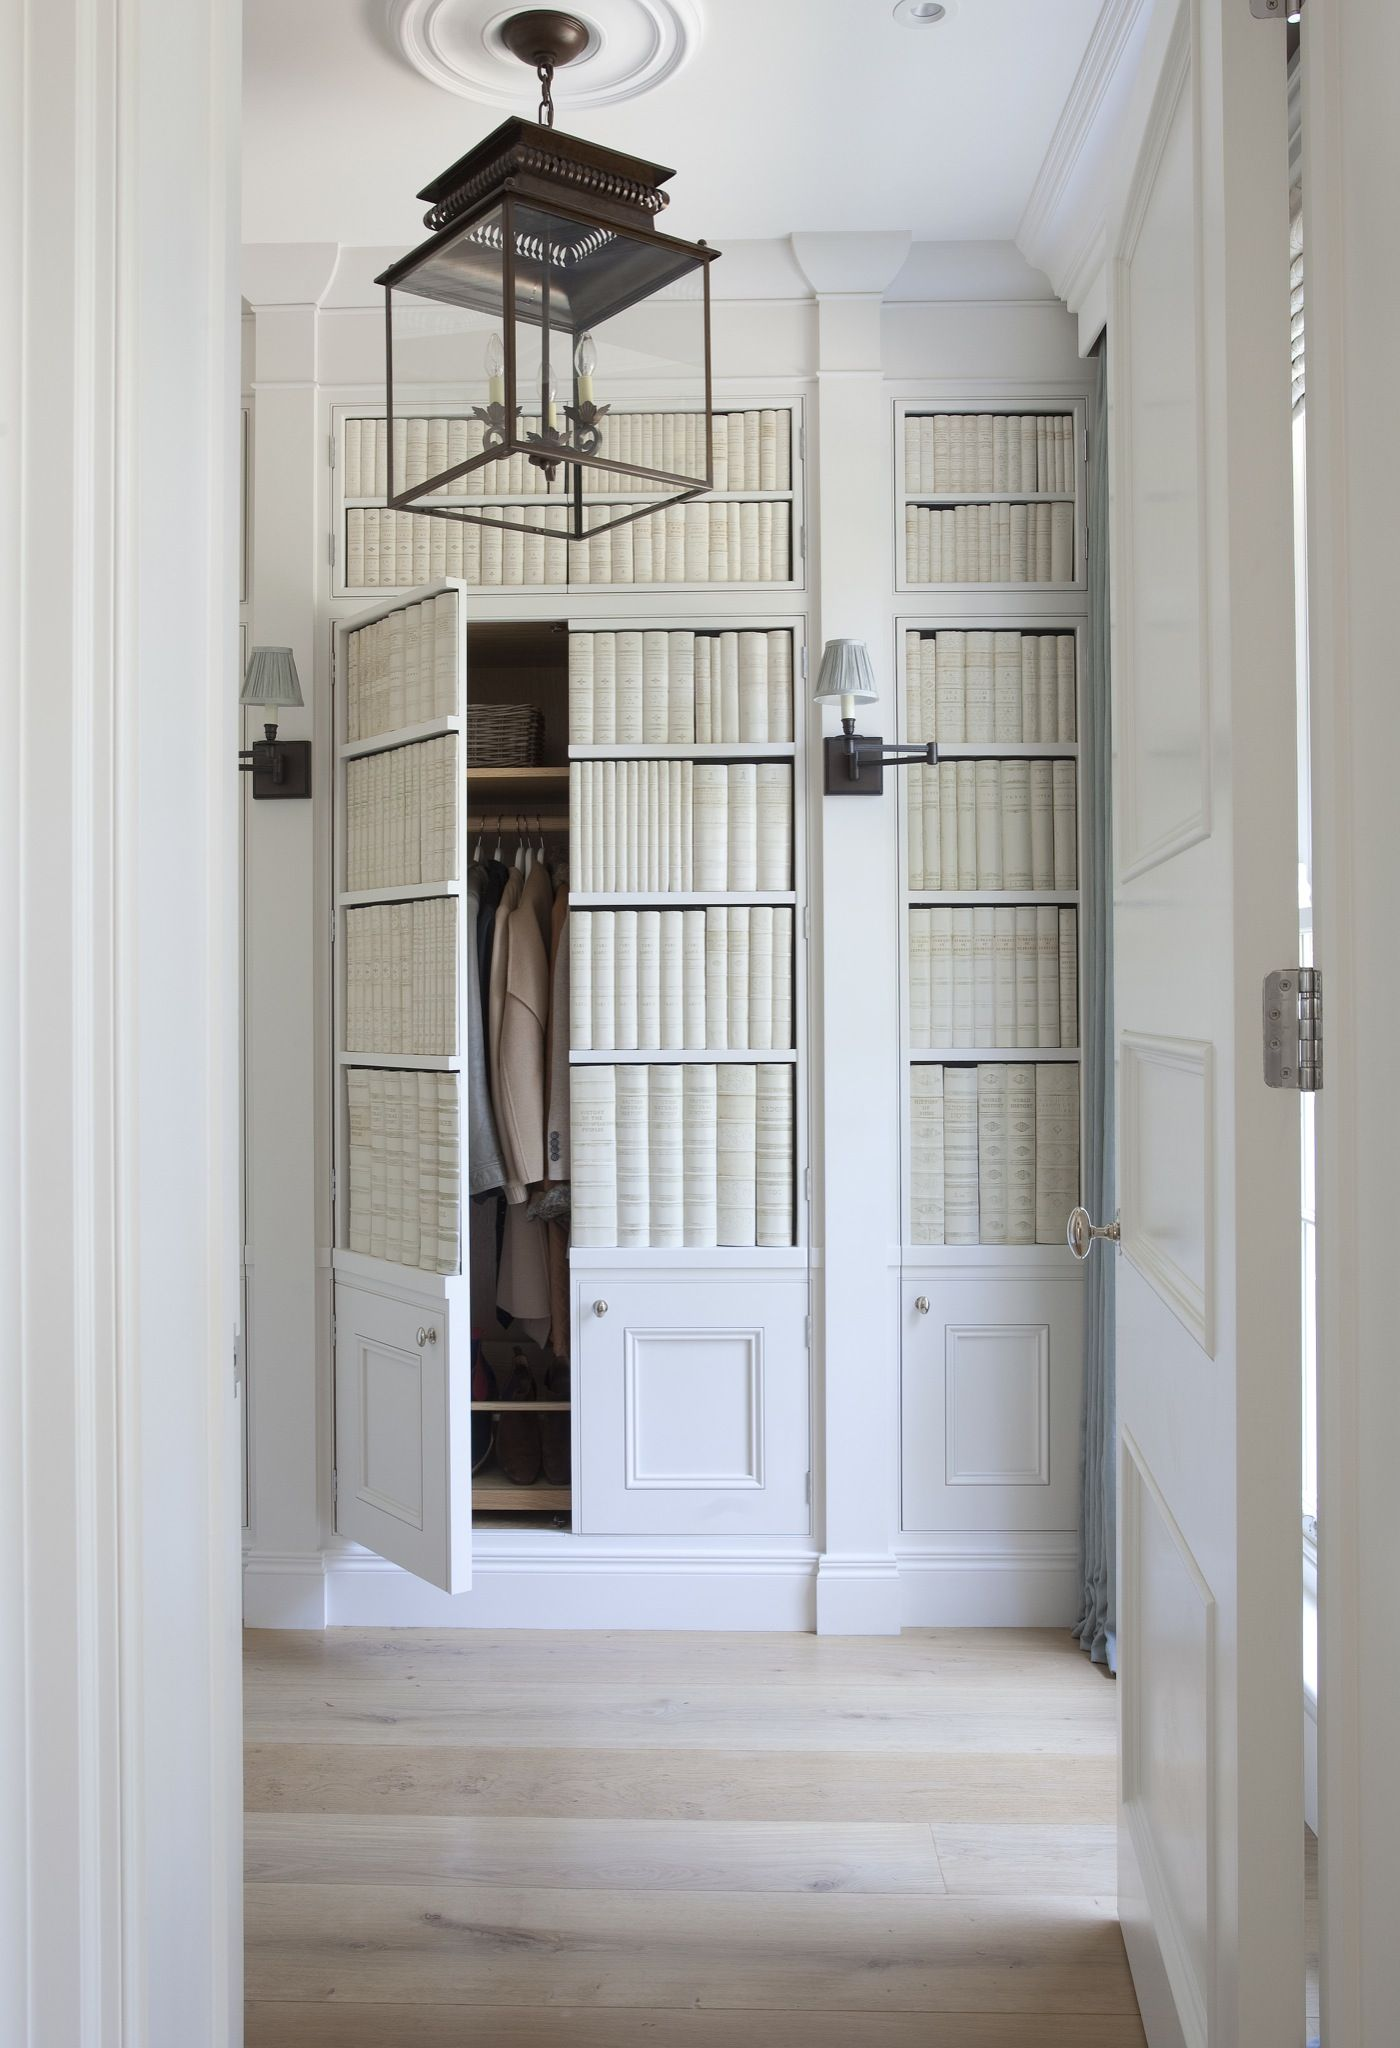 Concealed #storage and #coat closet space from this #coastal style room & New Construction Home with Coastal Style | Coastal style Hidden ... Pezcame.Com